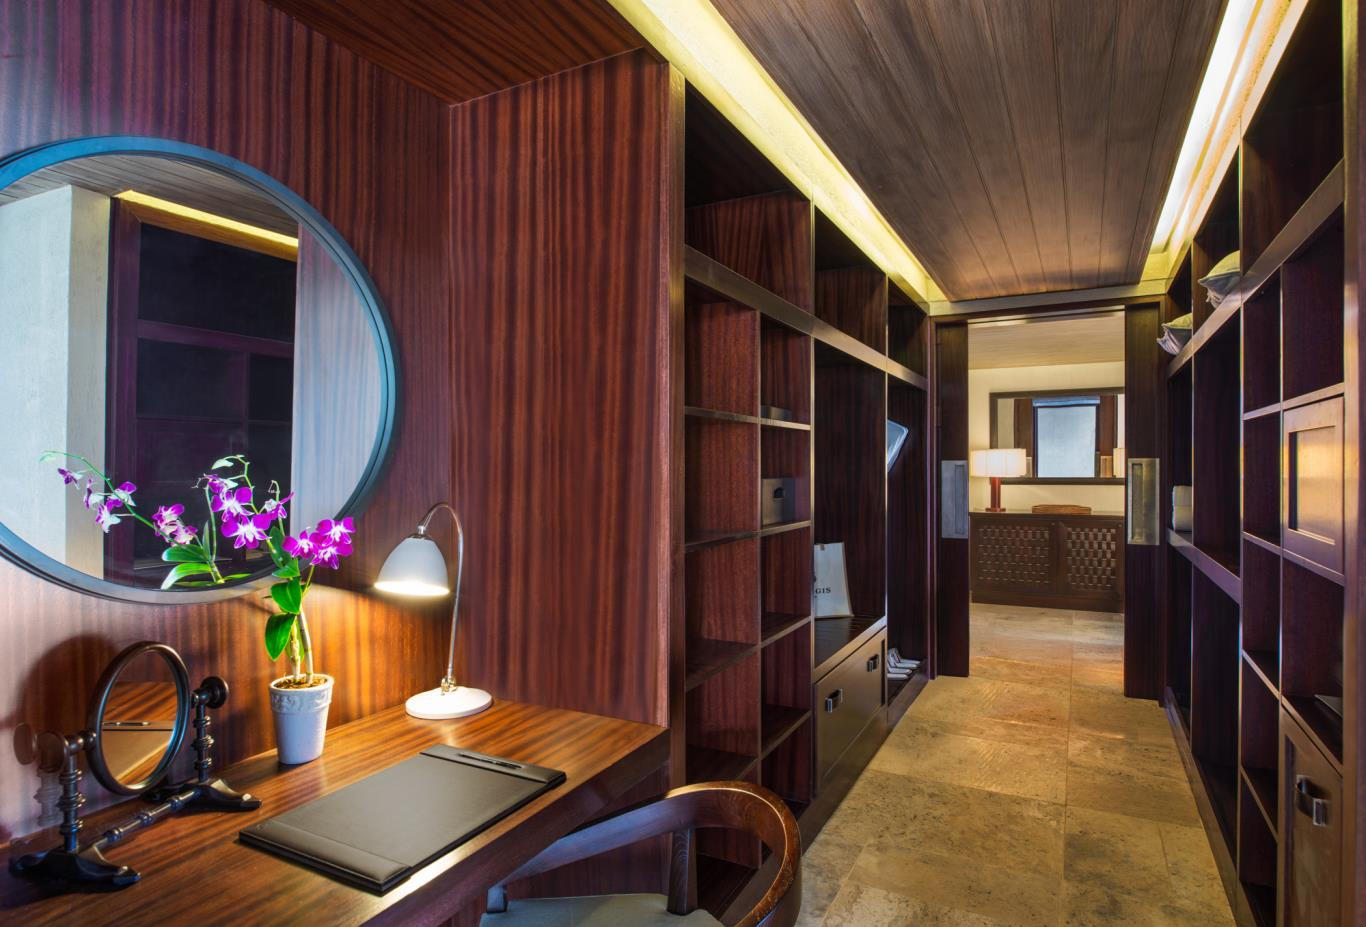 The St Regis Villa walk in wardrobe